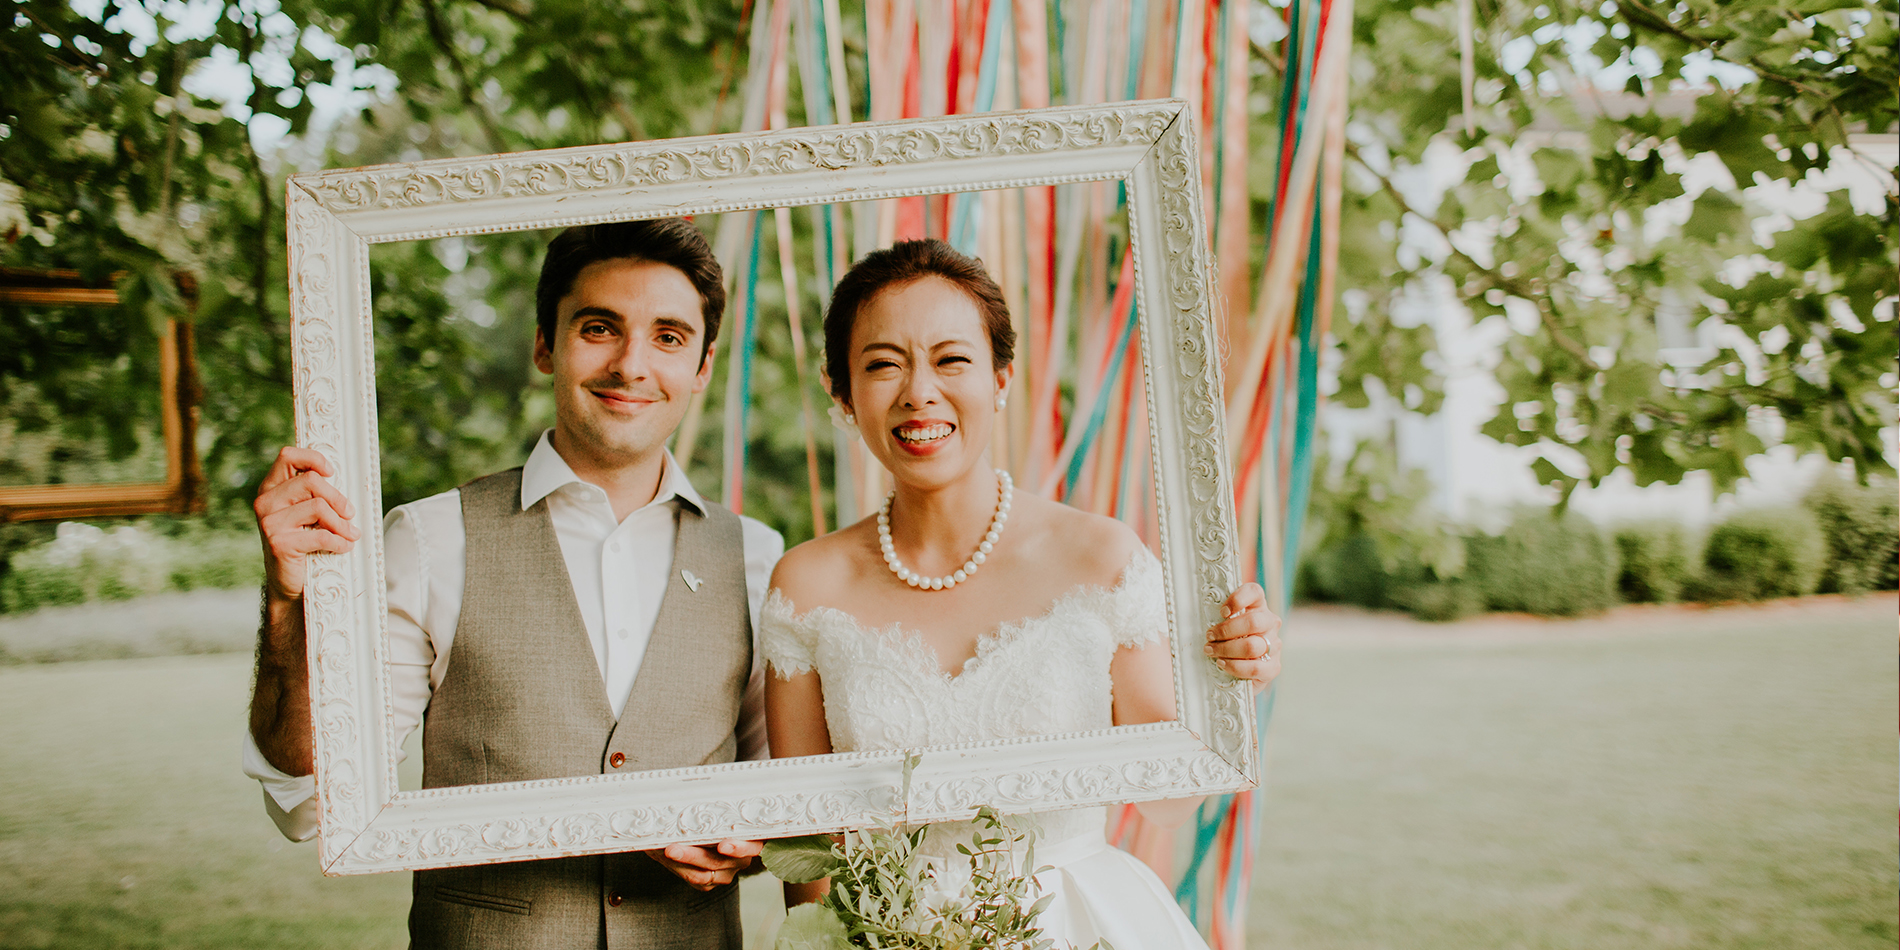 The wedding couple use a large picture frame as a fun wedding photo prop at their Morden Hall wedding